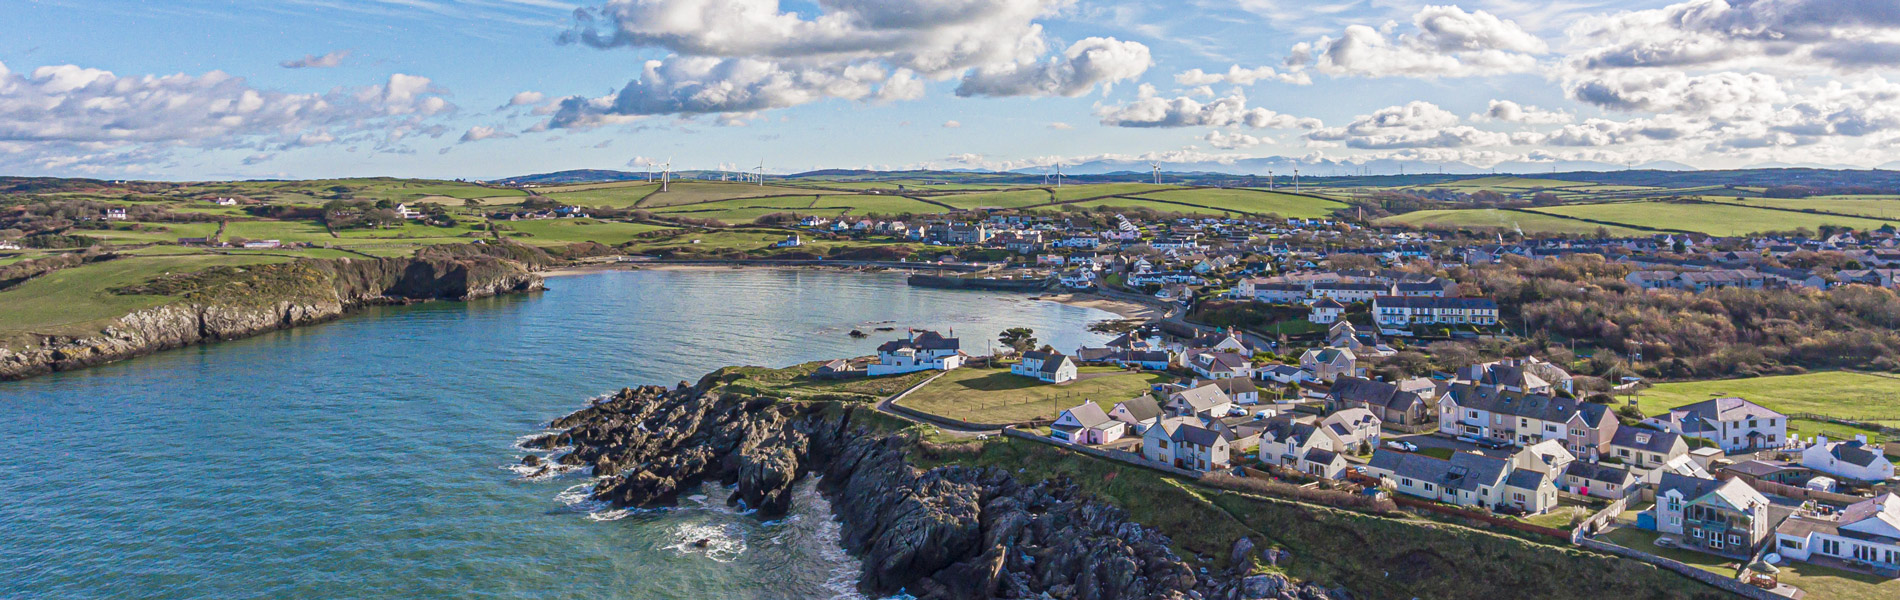 holiday cottages cemaes bay